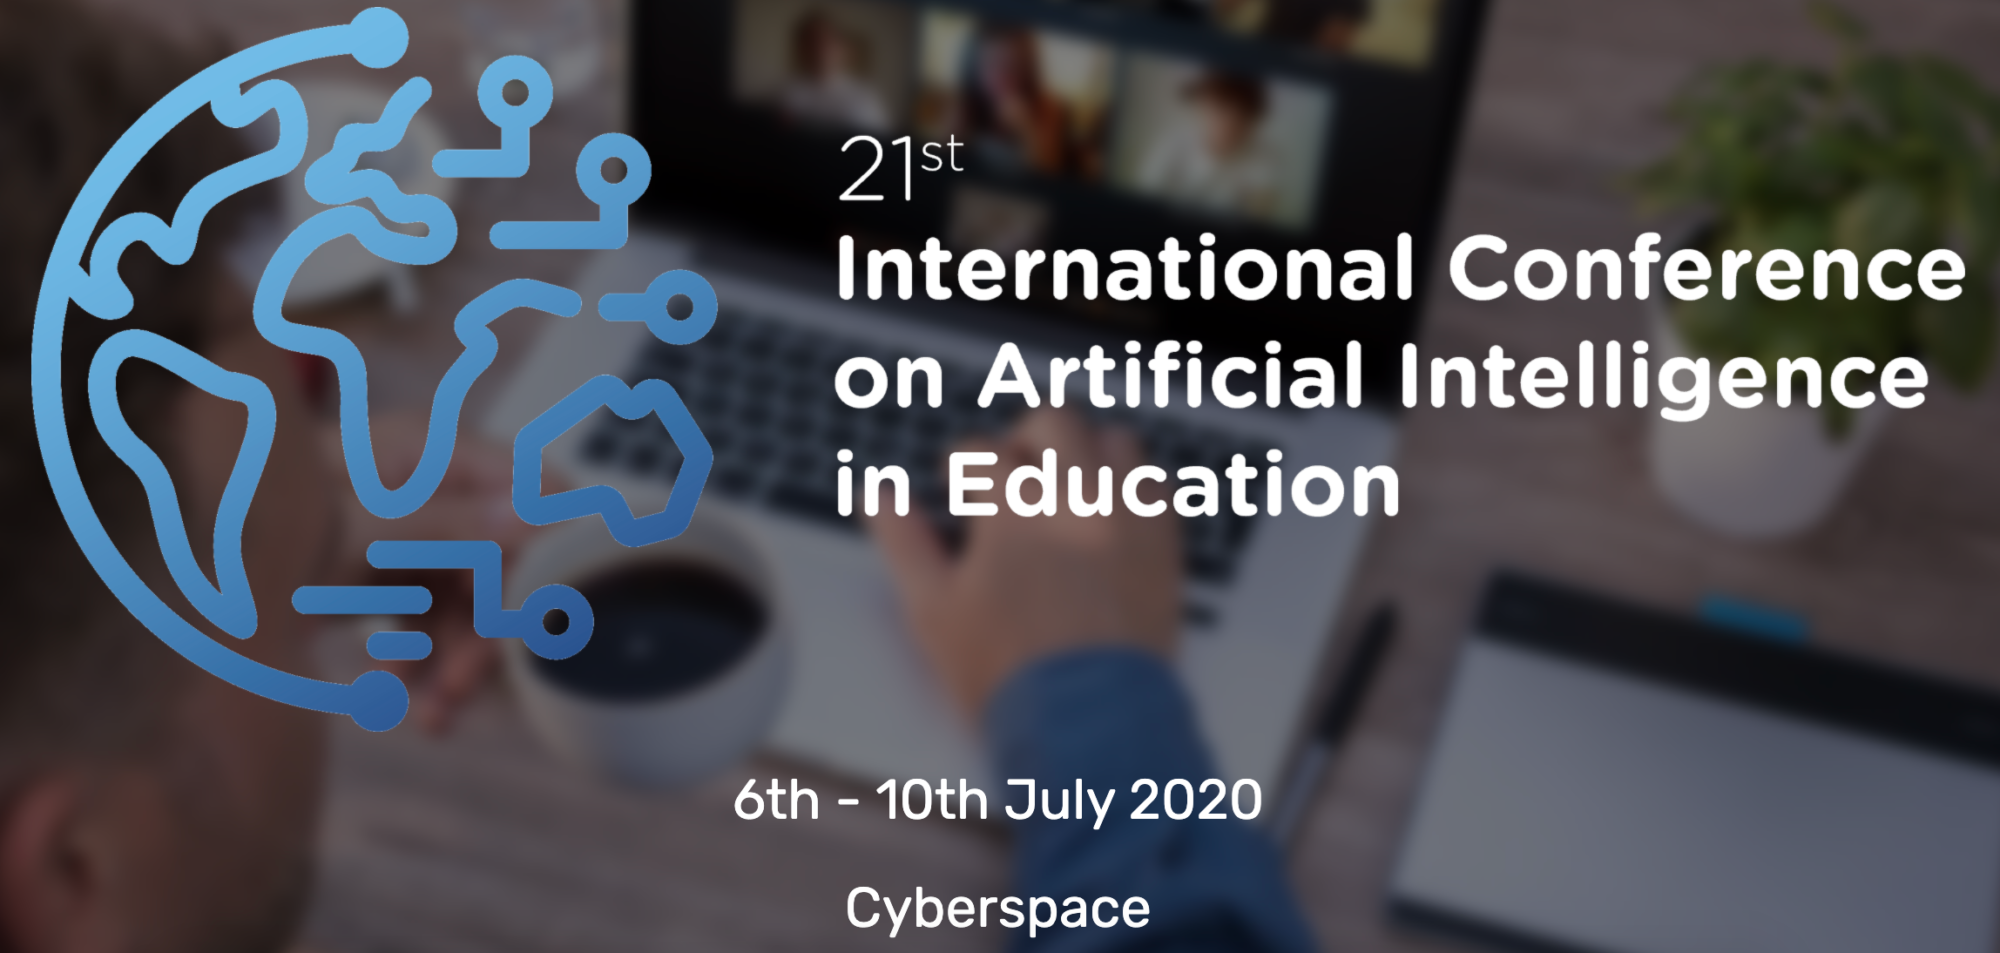 International Conference on Artificial Intelligence in Education (AIED 2020)